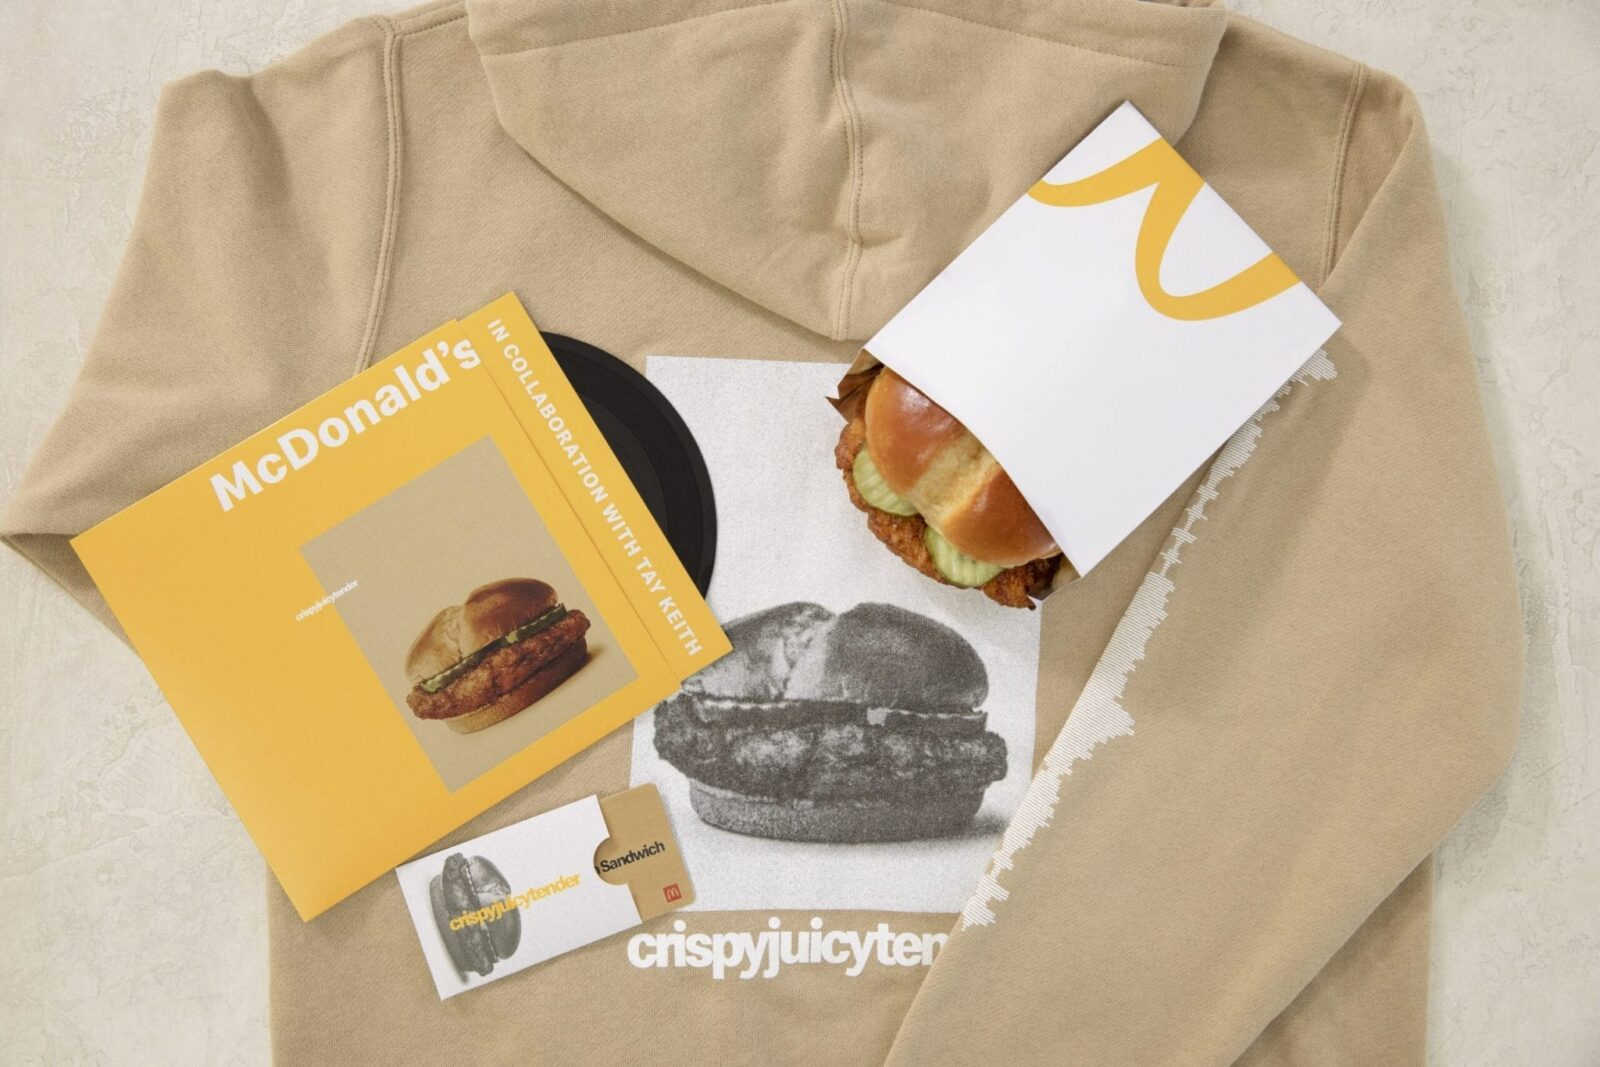 McDonald's® Drops Early Access to the New Crispy Chicken Sandwich